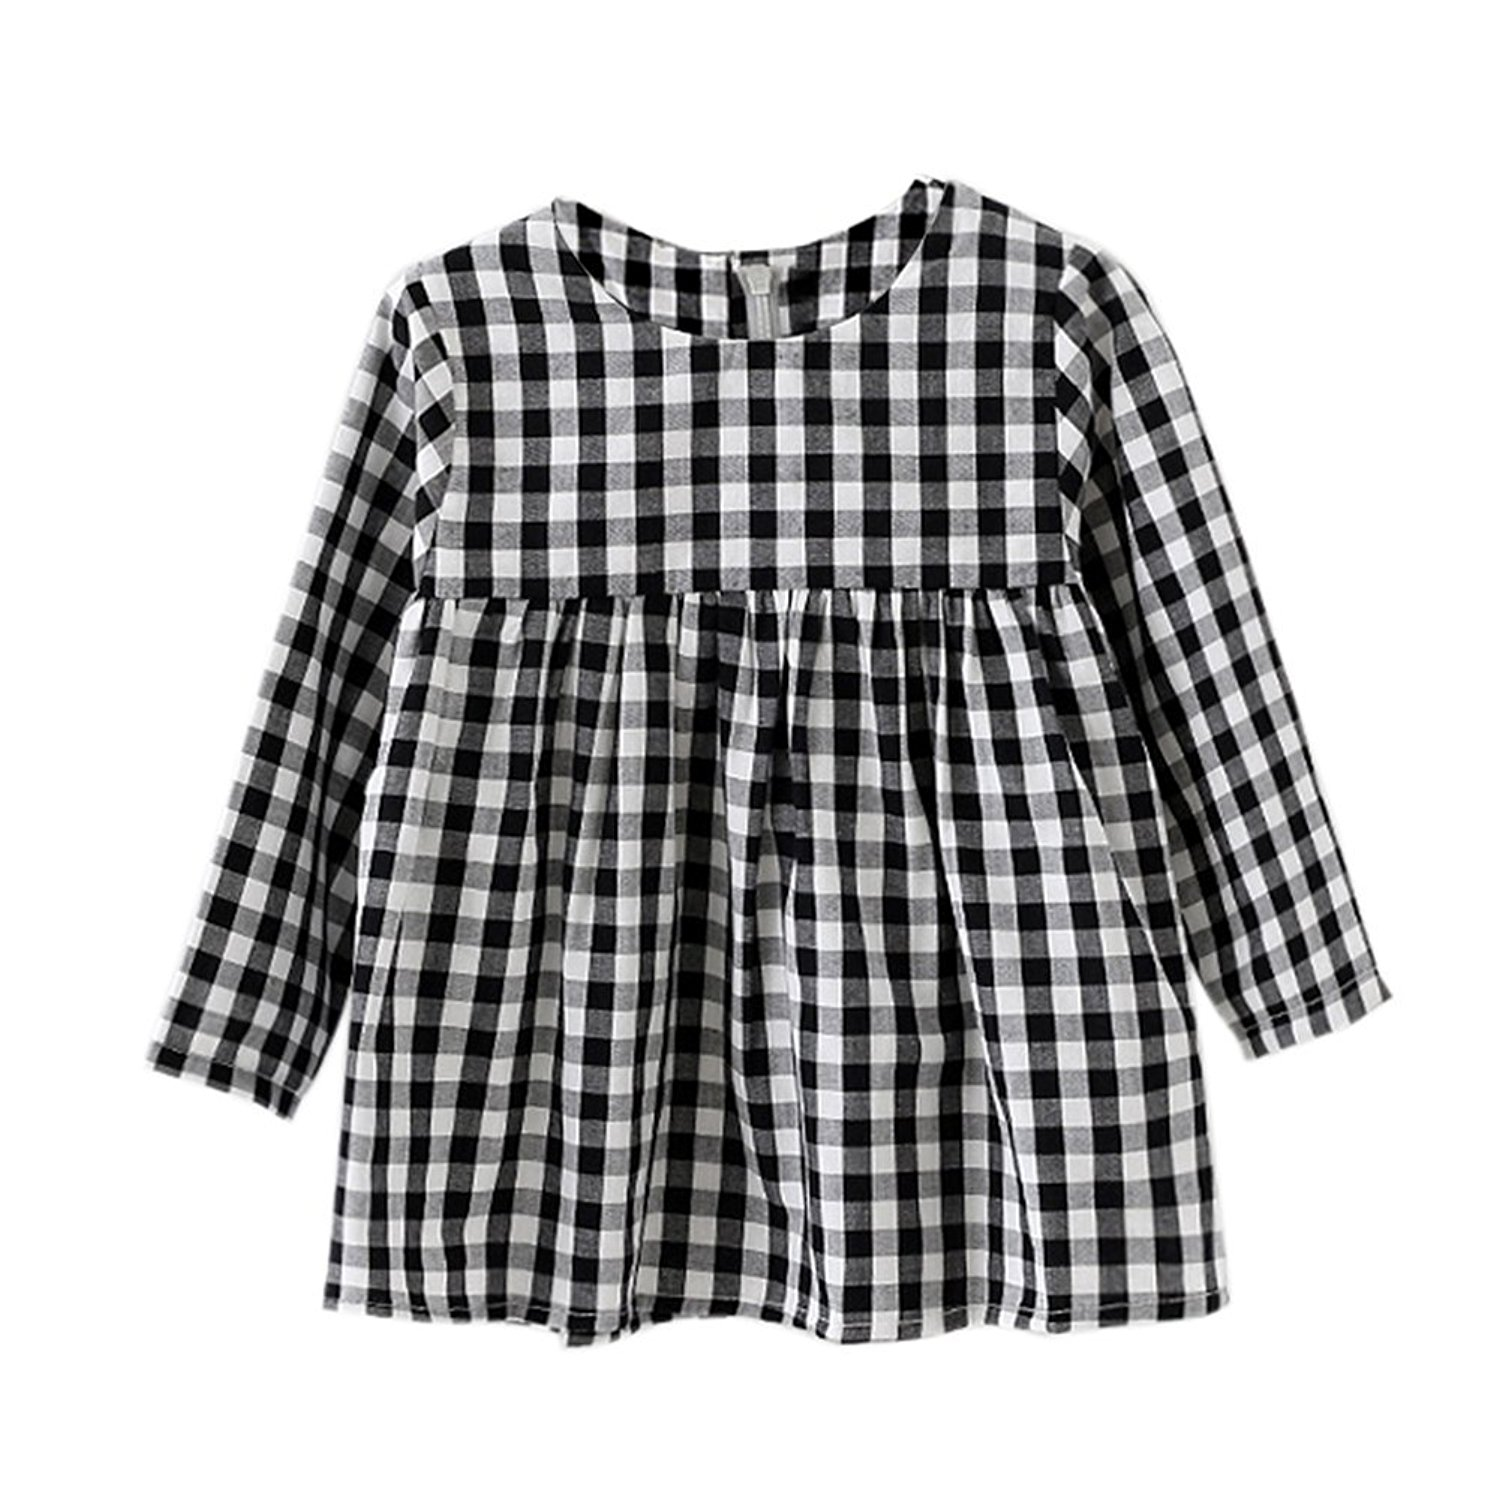 Little Kids and Baby Girls Long Sleeve Dress in White and Black Plaid